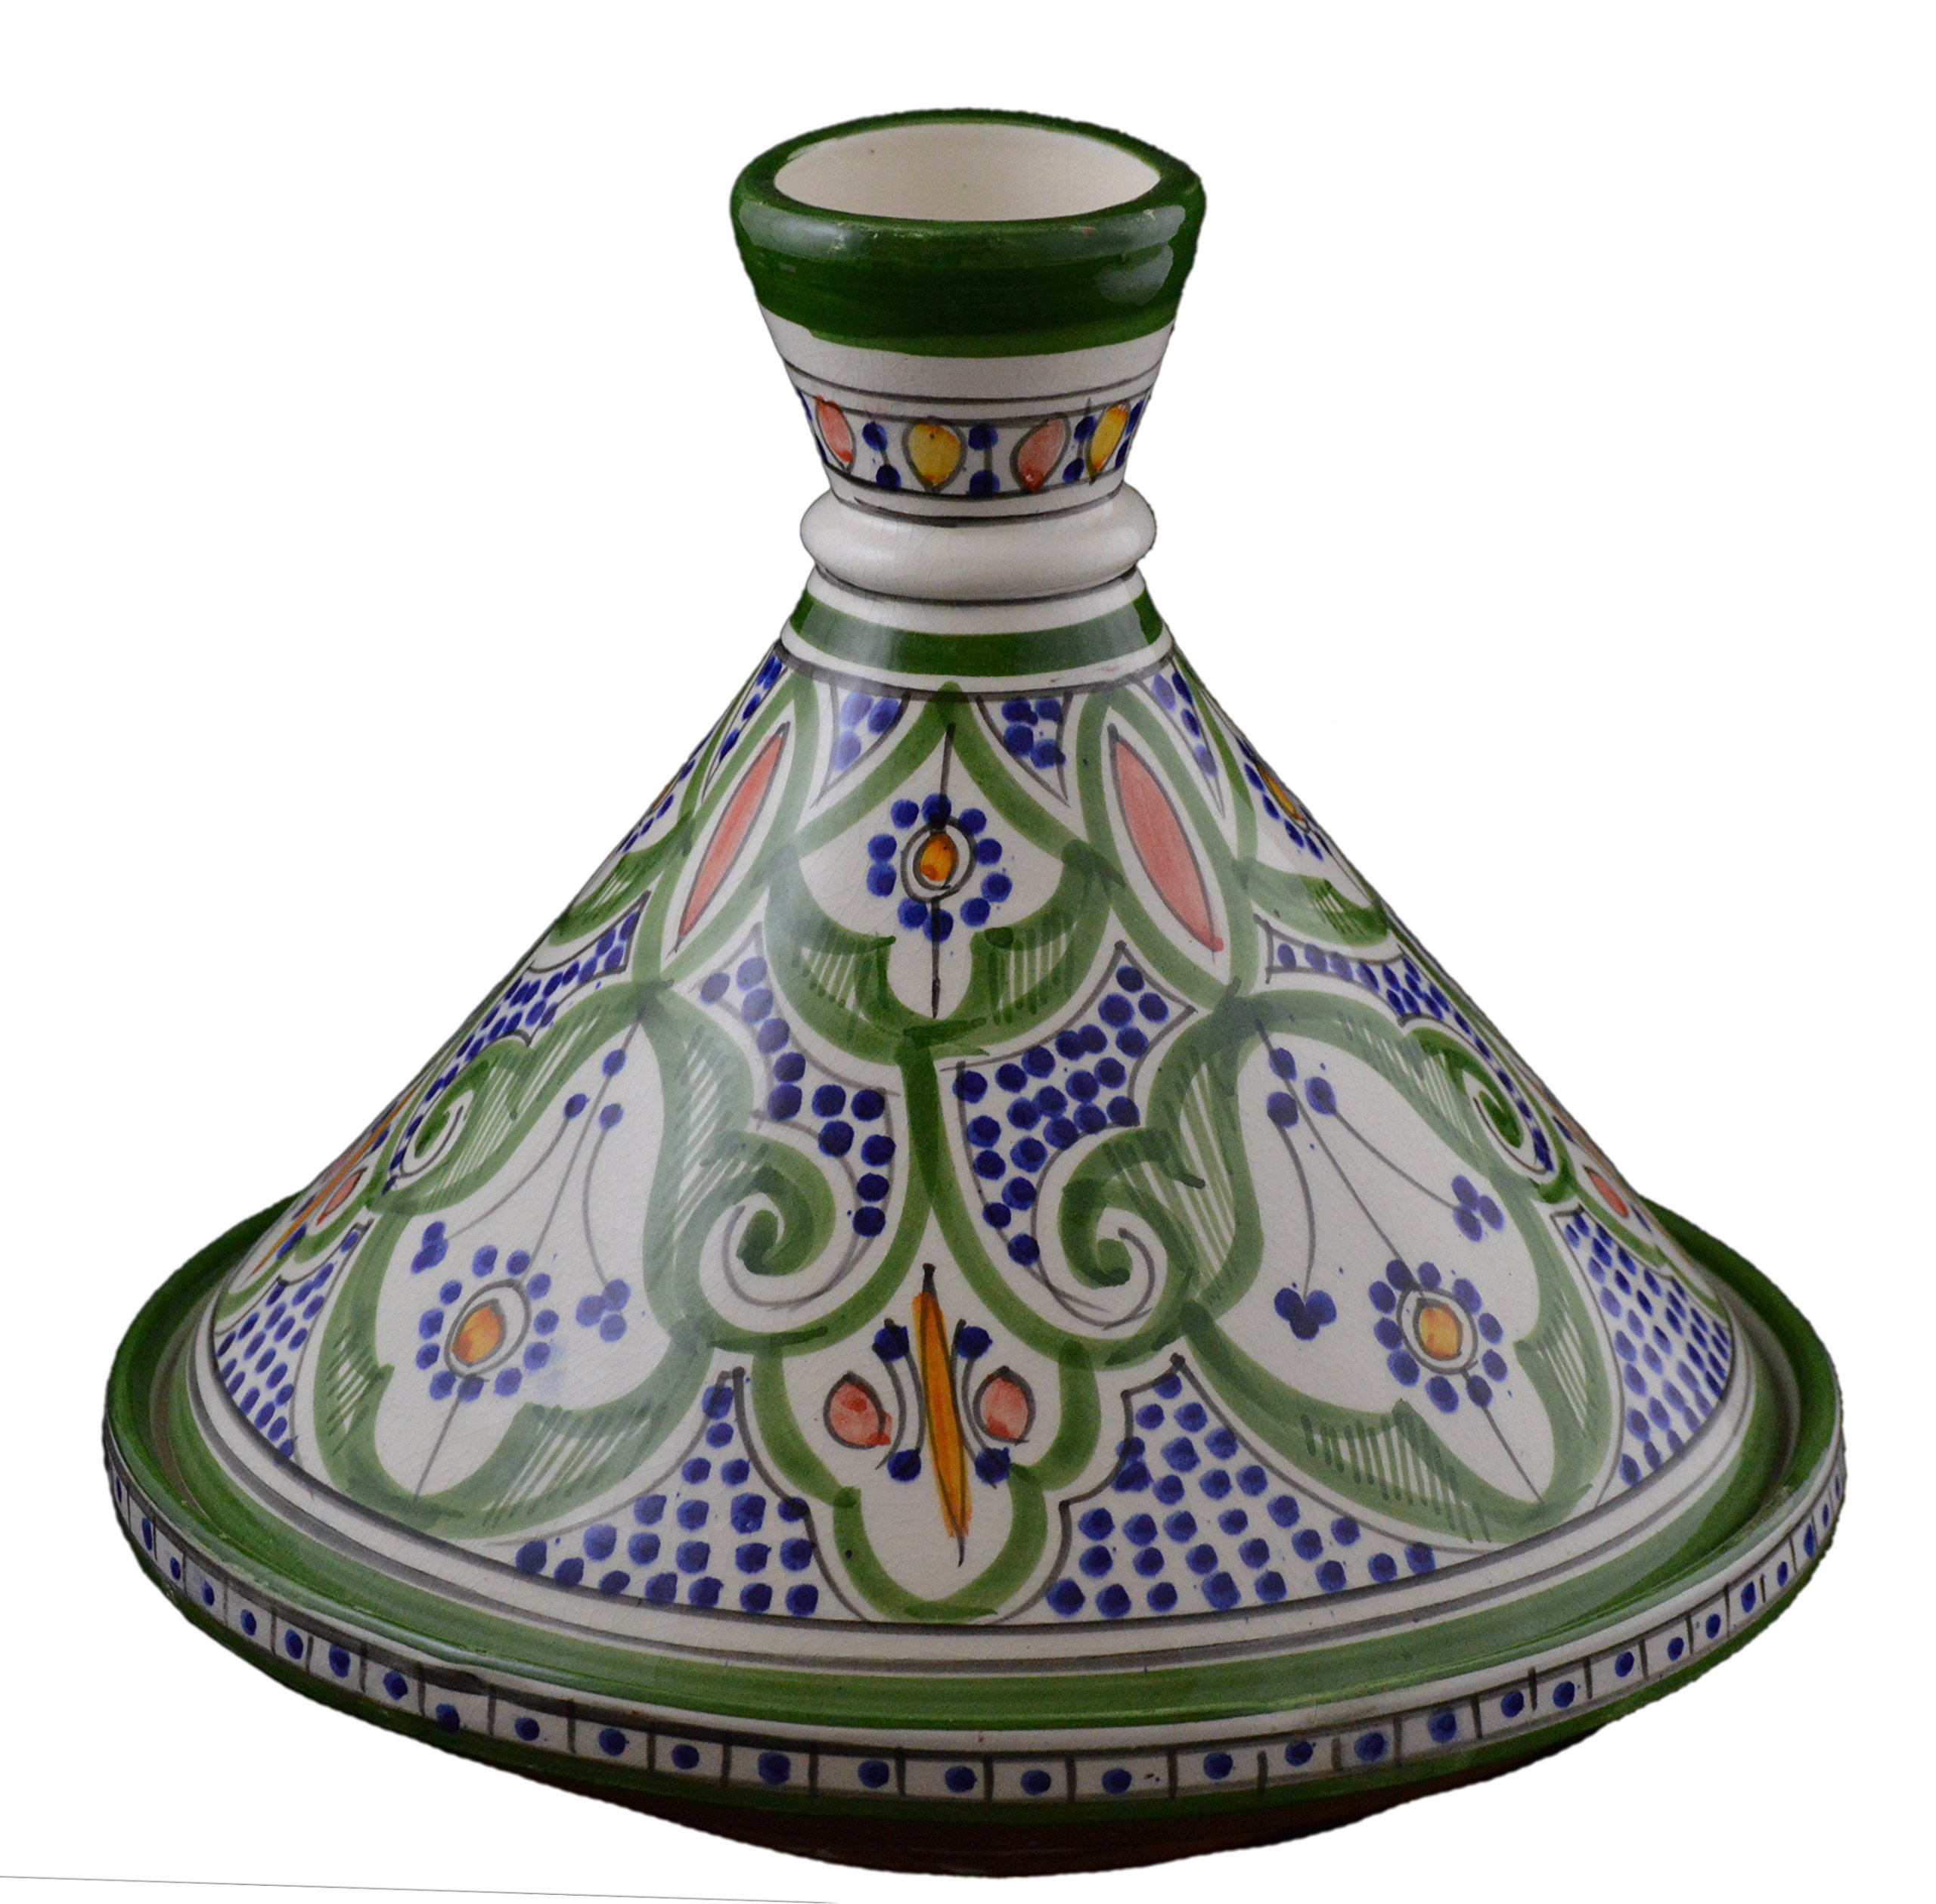 Moroccan Handmade Serving Tagine Exquisite Ceramic With Vivid Colors Traditional 12 inches Across XLarge